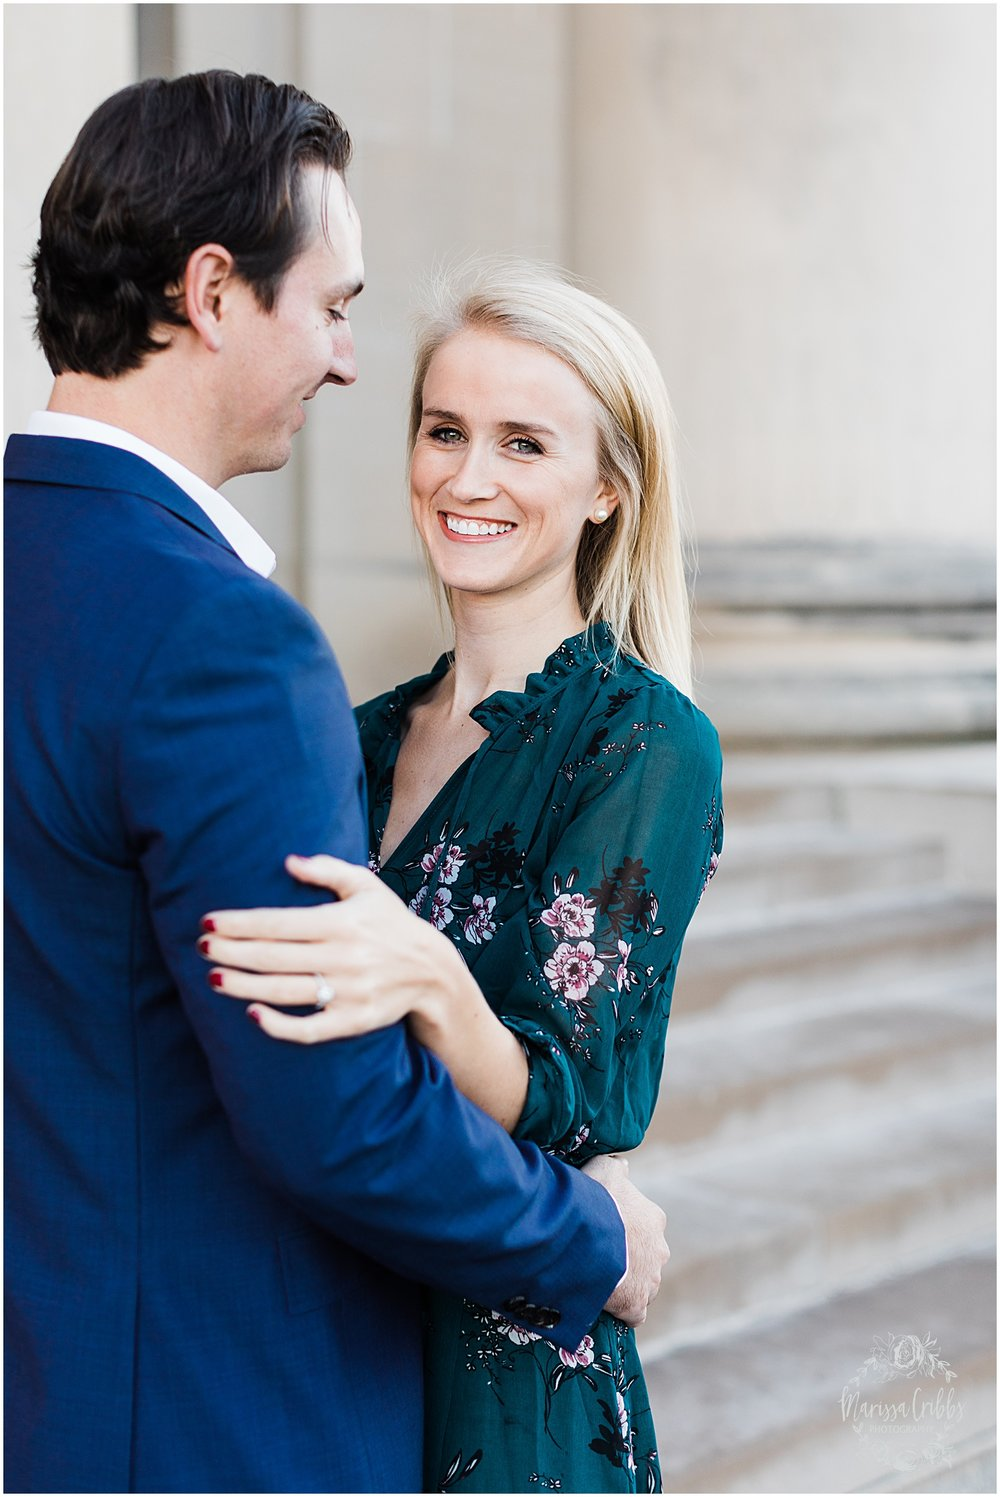 HALEY & CHASE ENGAGED LOOSE PARK & NELSON ATKINS | FALL ENGAGEMENT PHOTOS | MARISSA CRIBBS PHOTOGRAPHY_6854.jpg